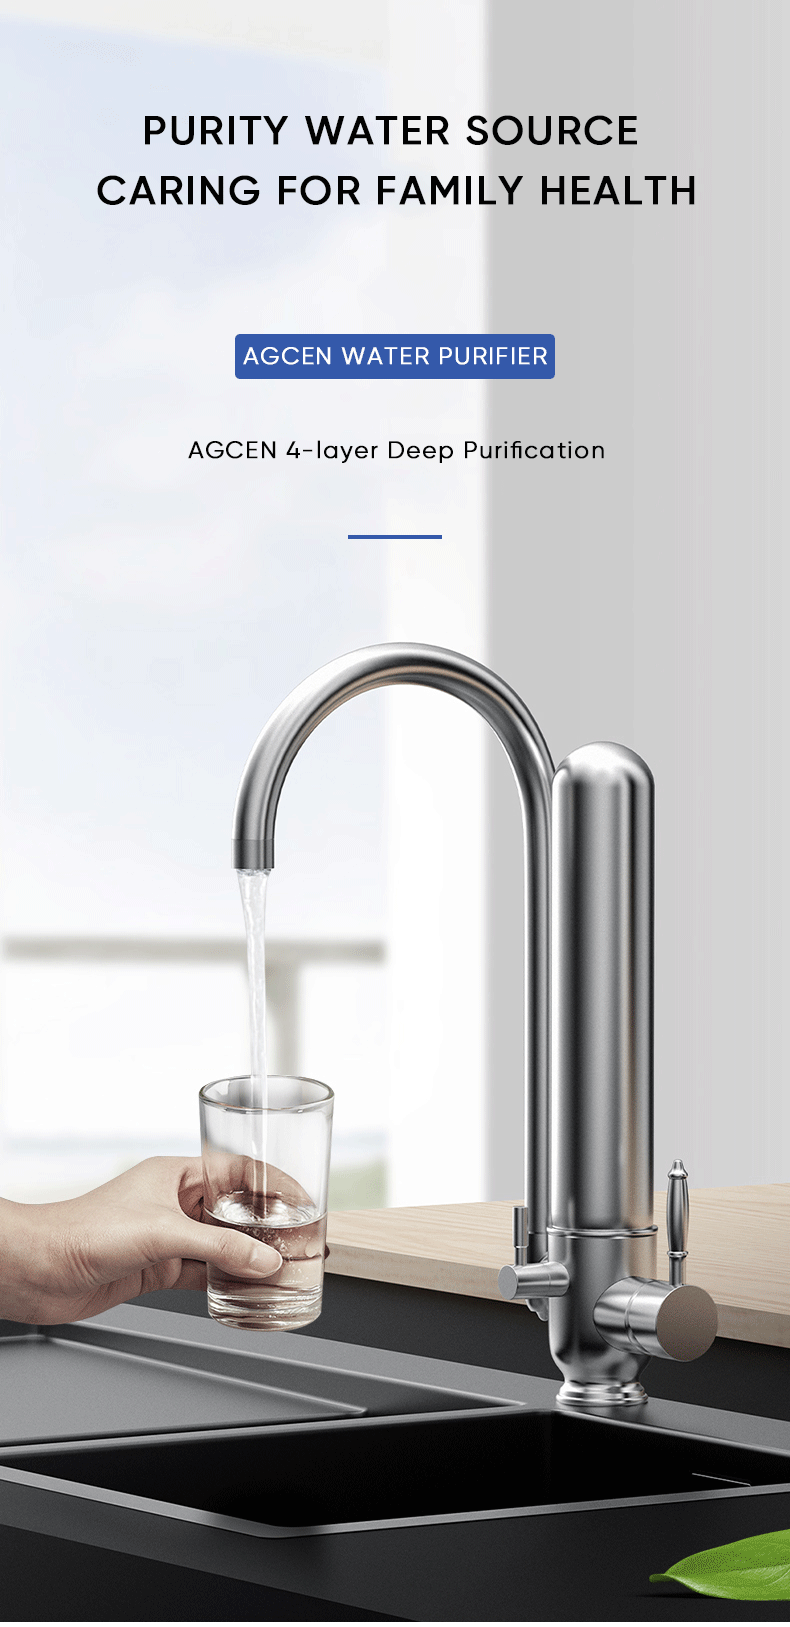 Agcen stainless steel desktop tap water filter purifier for home